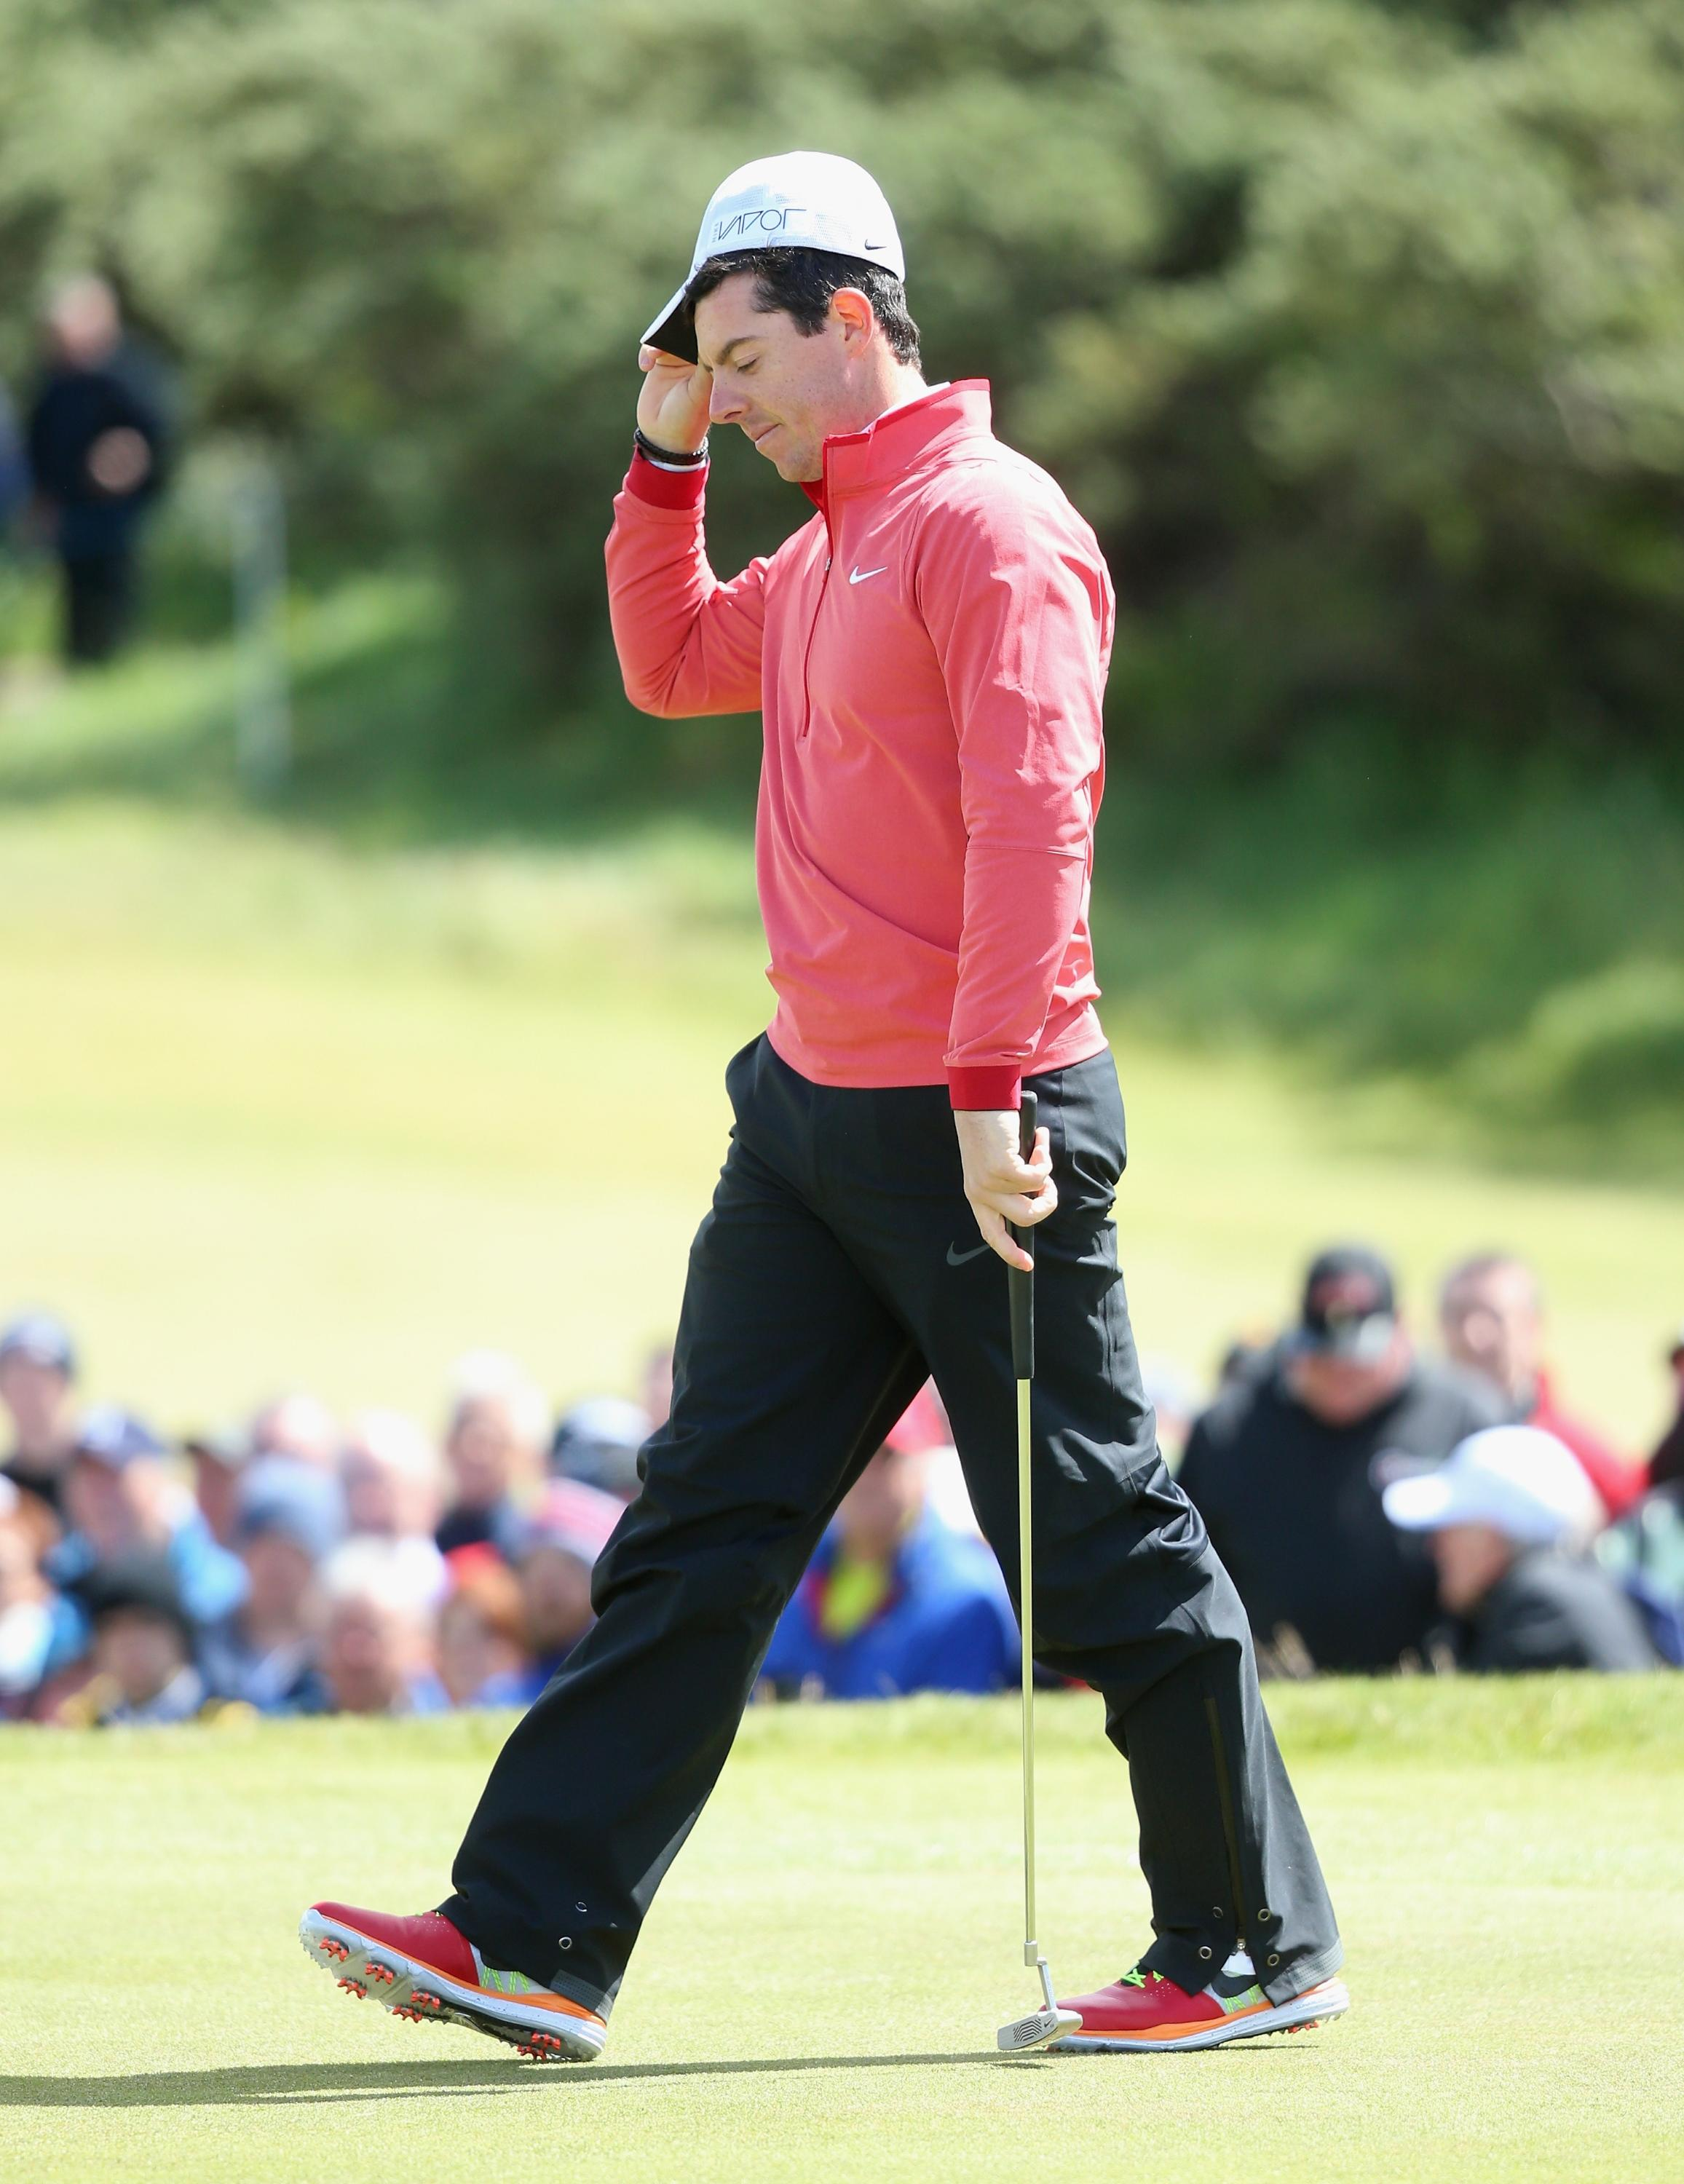 Rory McIlroy struggles to 80 in Irish Open first round